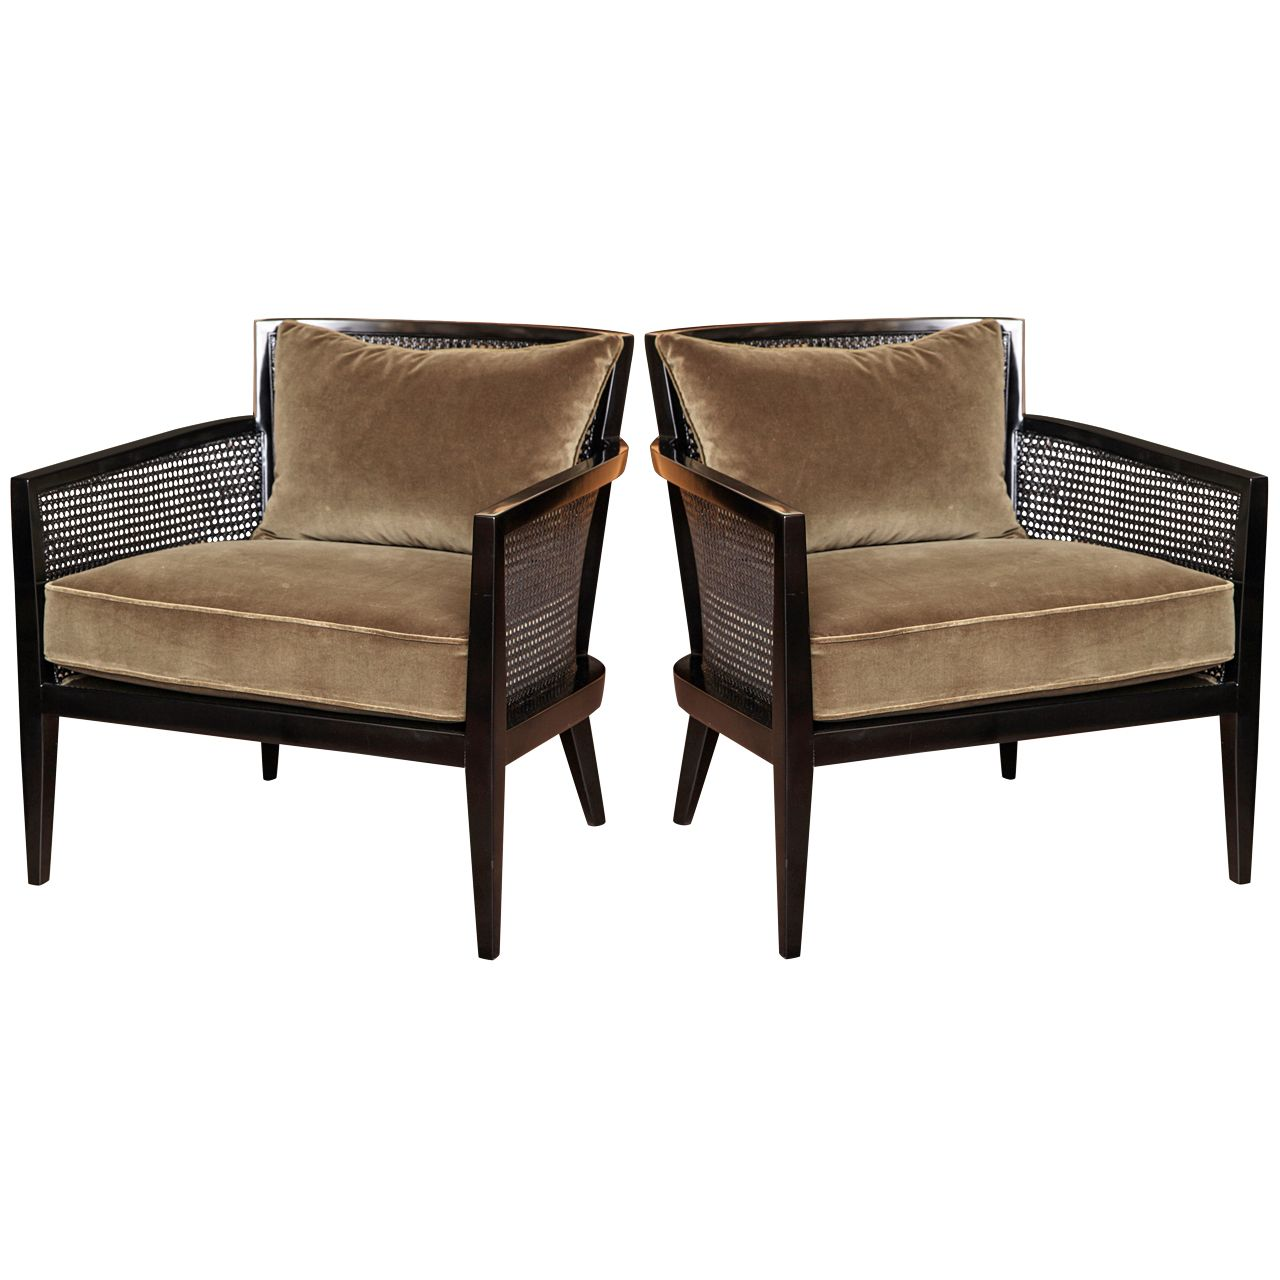 Pair Of Cane Armchairs By Harvey Probber C 1960 1stdibs Com Caned Armchair Furniture Chair Furniture